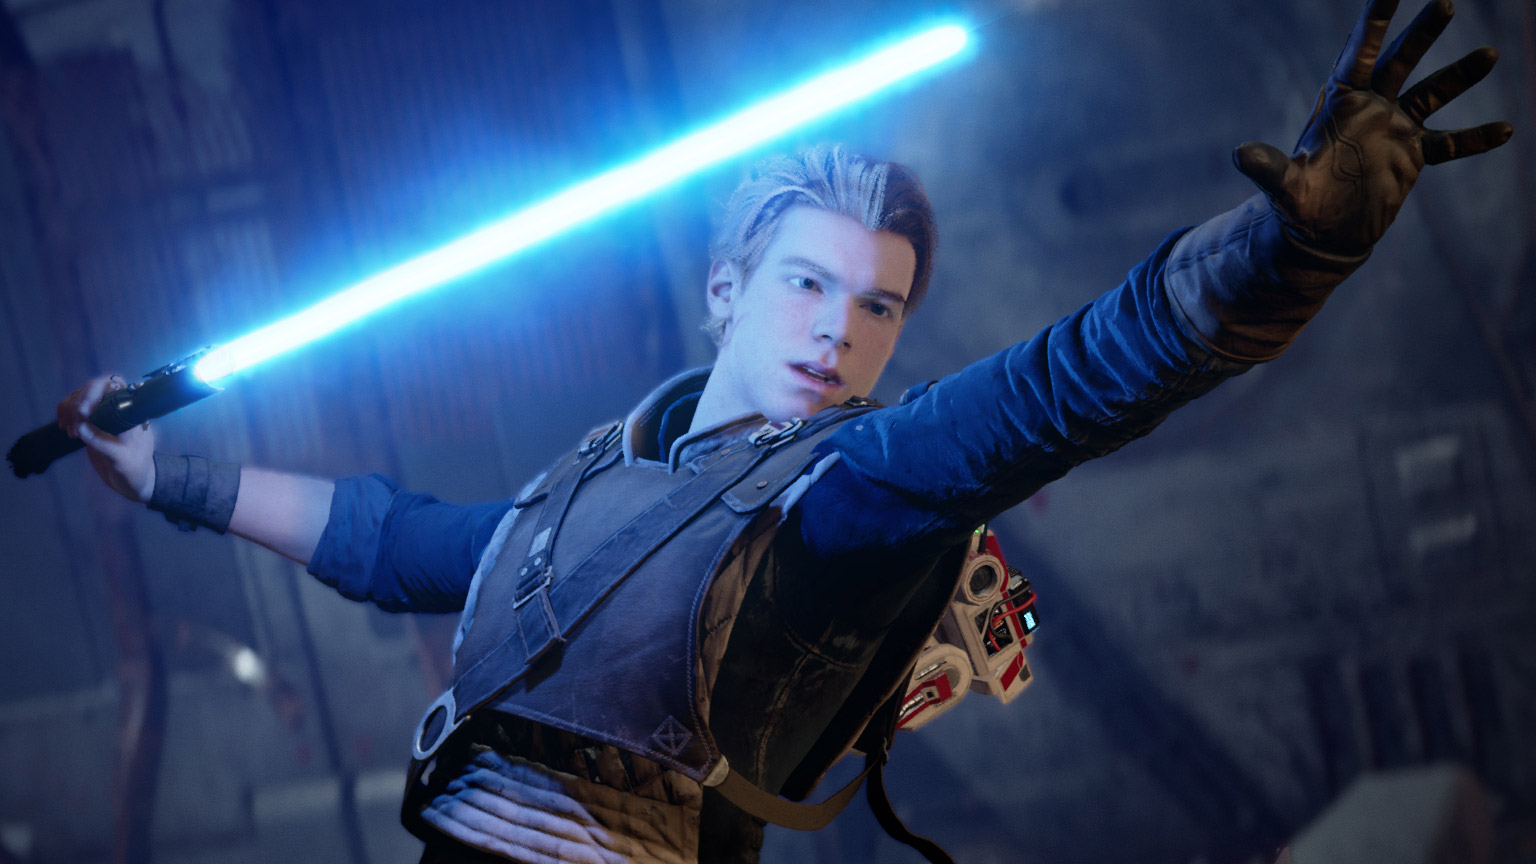 Star Wars Jedi: Fallen Order screenshot - Cal with lightsaber